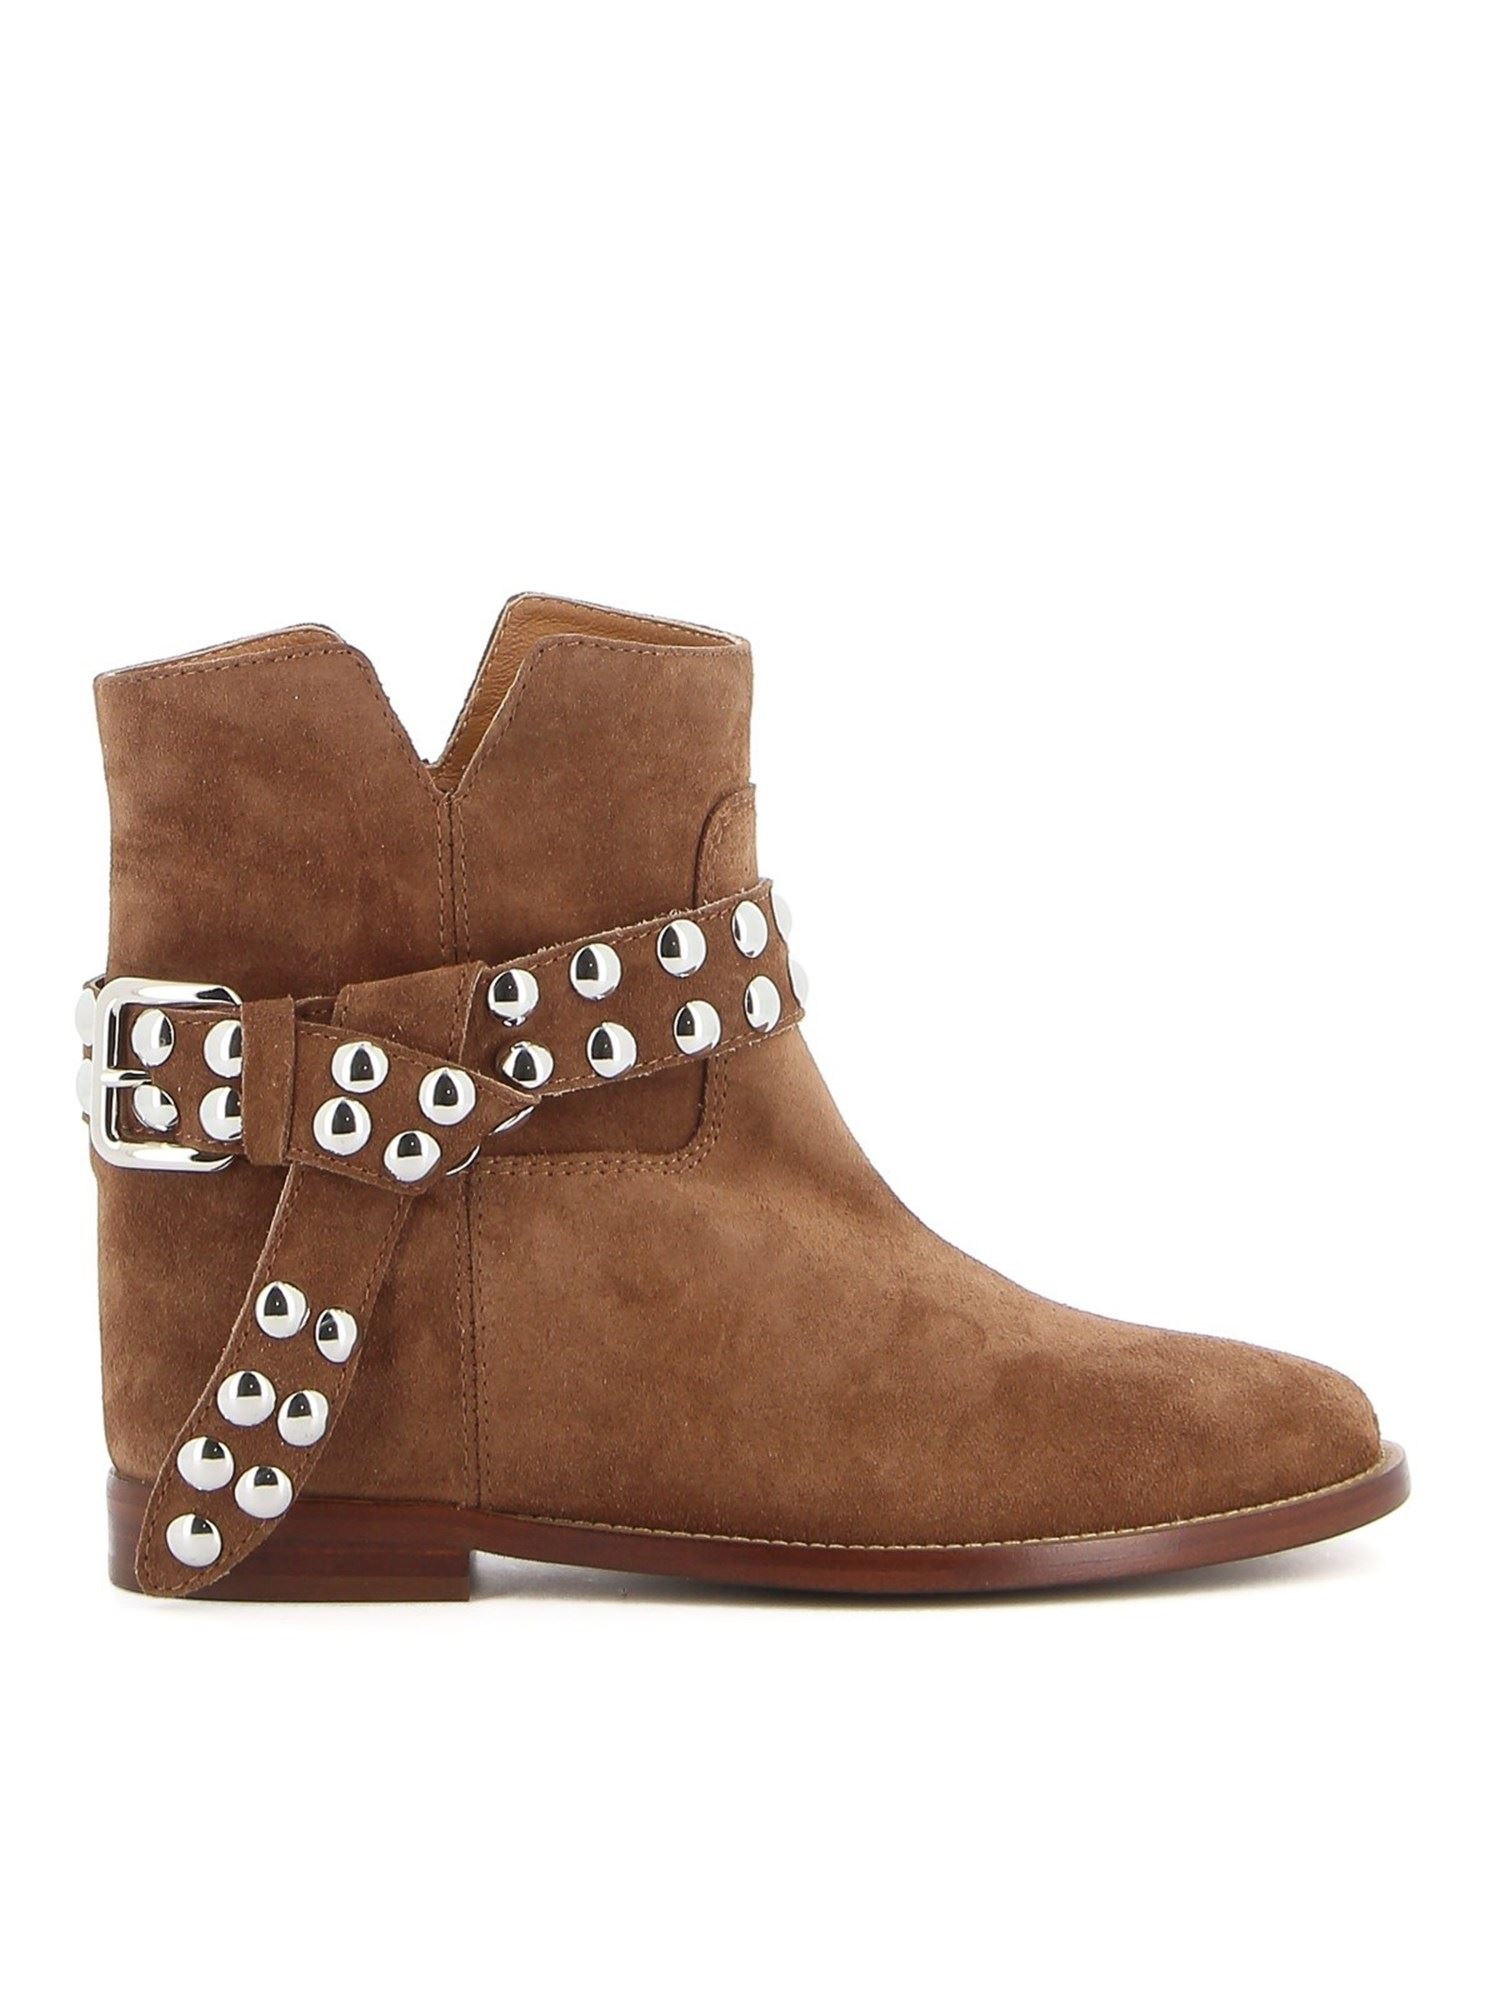 Via Roma 15 SUEDE STUDDED ANKLE BOOTS IN BROWN